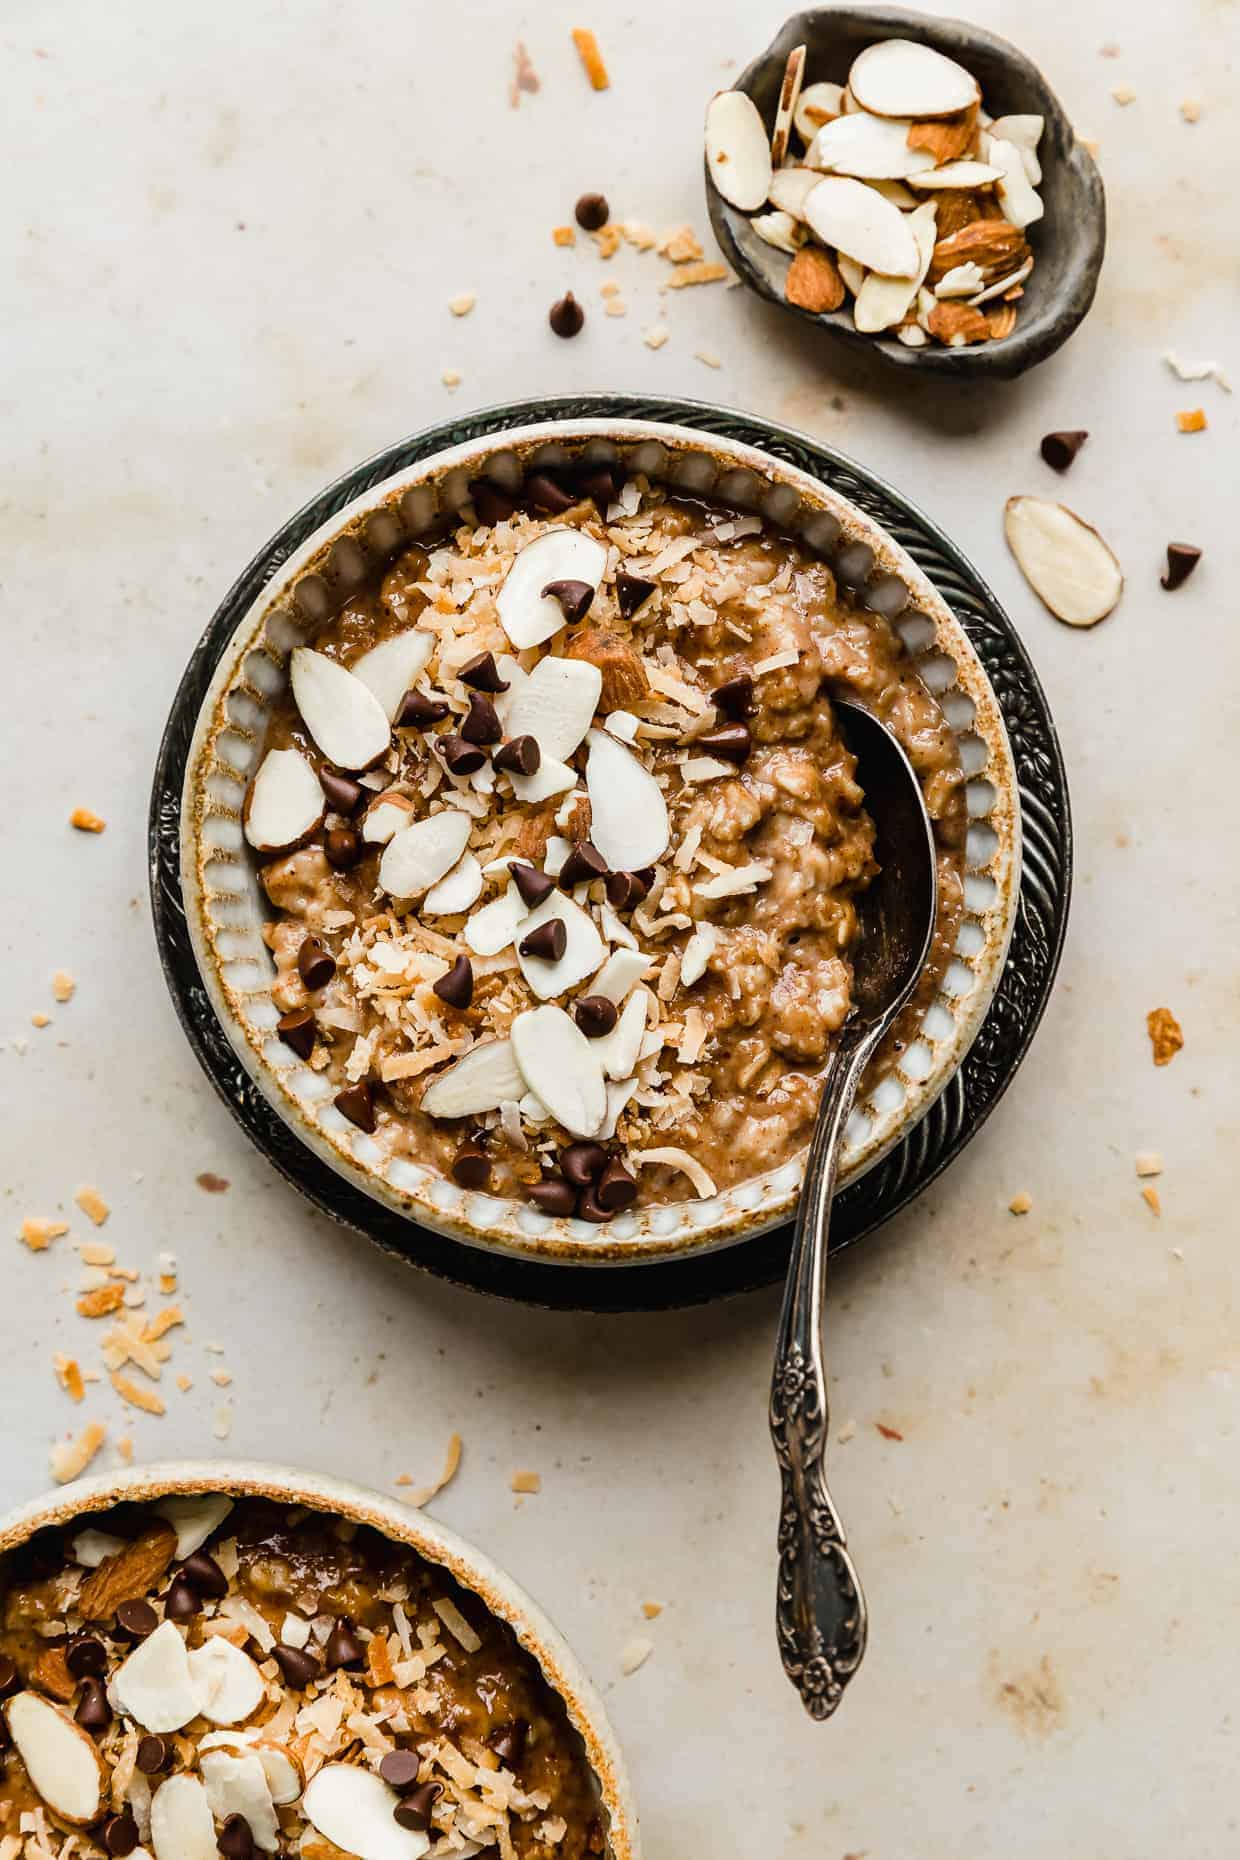 A bowl full of Almond Joy Oatmeal topped with sliced almonds, toasted coconut, and chocolate chips.